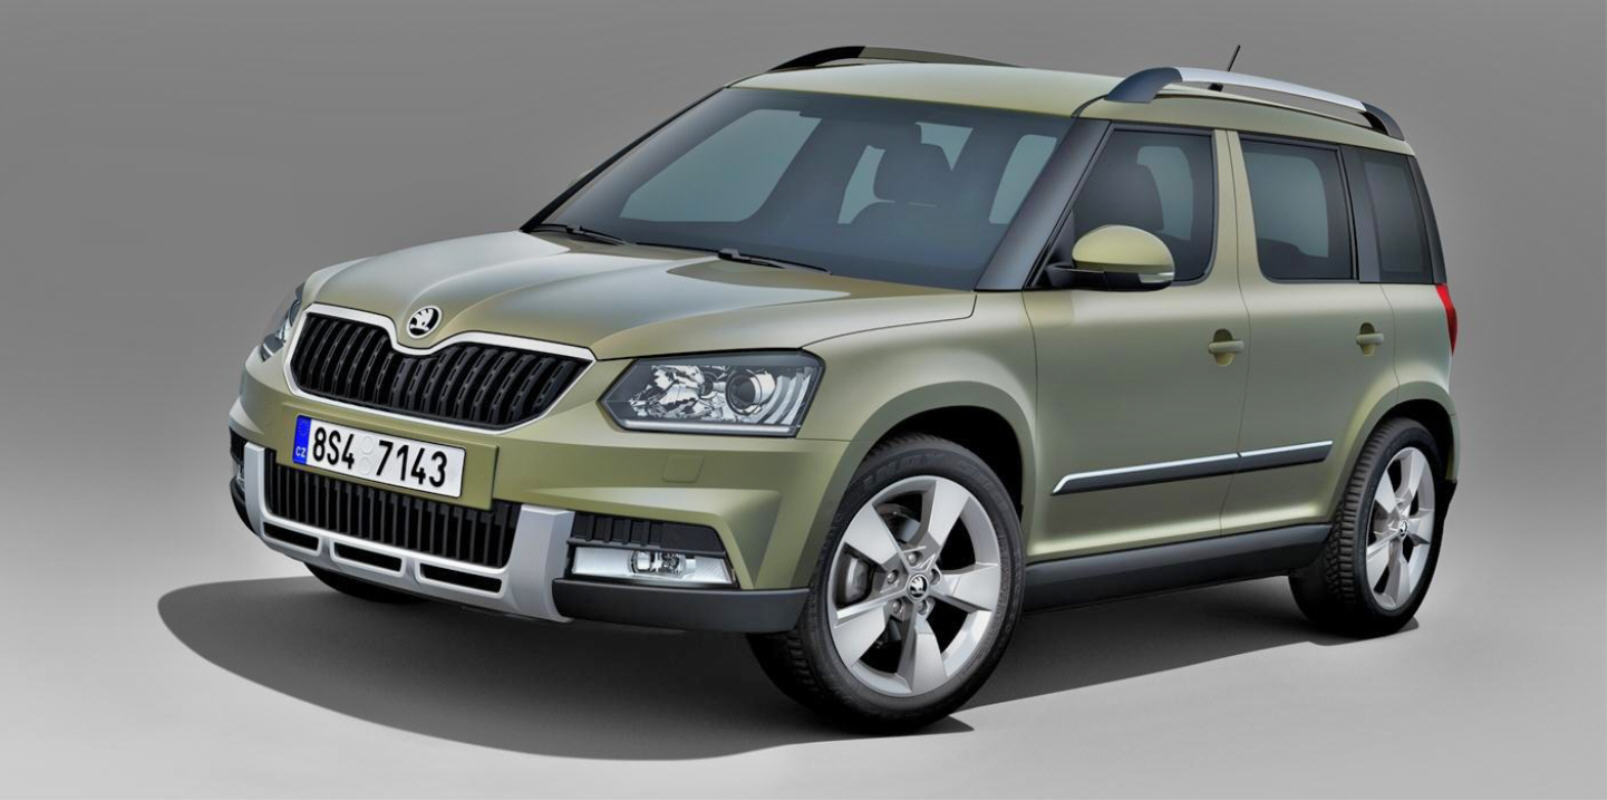 autoruote 4x4 web magazine sulla mobilit 4x4 e sull 39 offroad nuova skoda yeti il suv. Black Bedroom Furniture Sets. Home Design Ideas